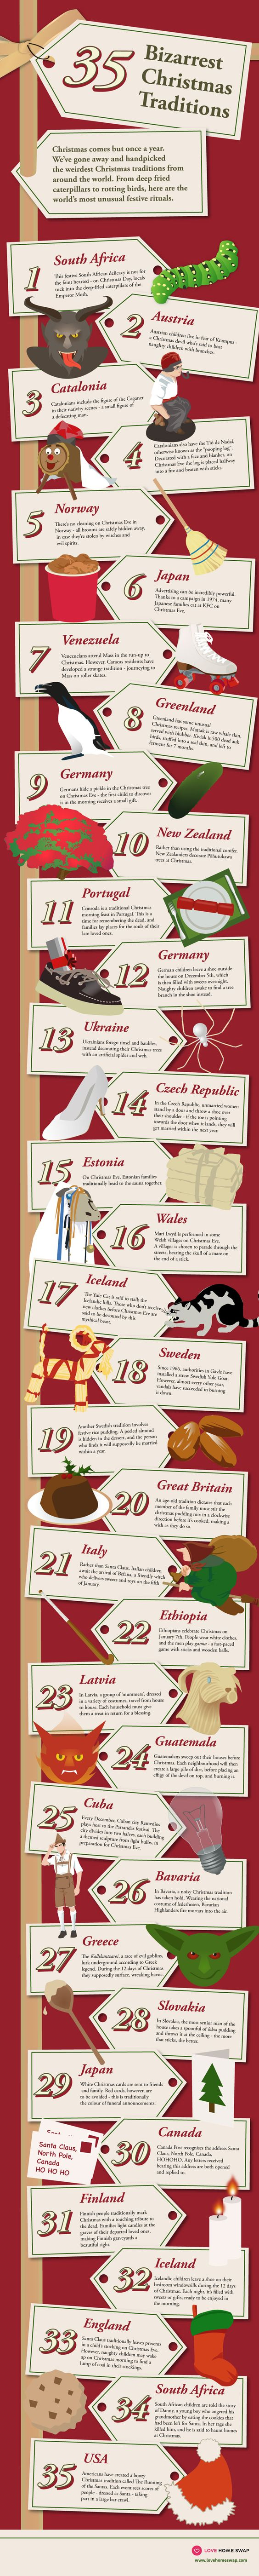 35 Bizarrest Christmas Traditions #Infographic #Christmas #traditions